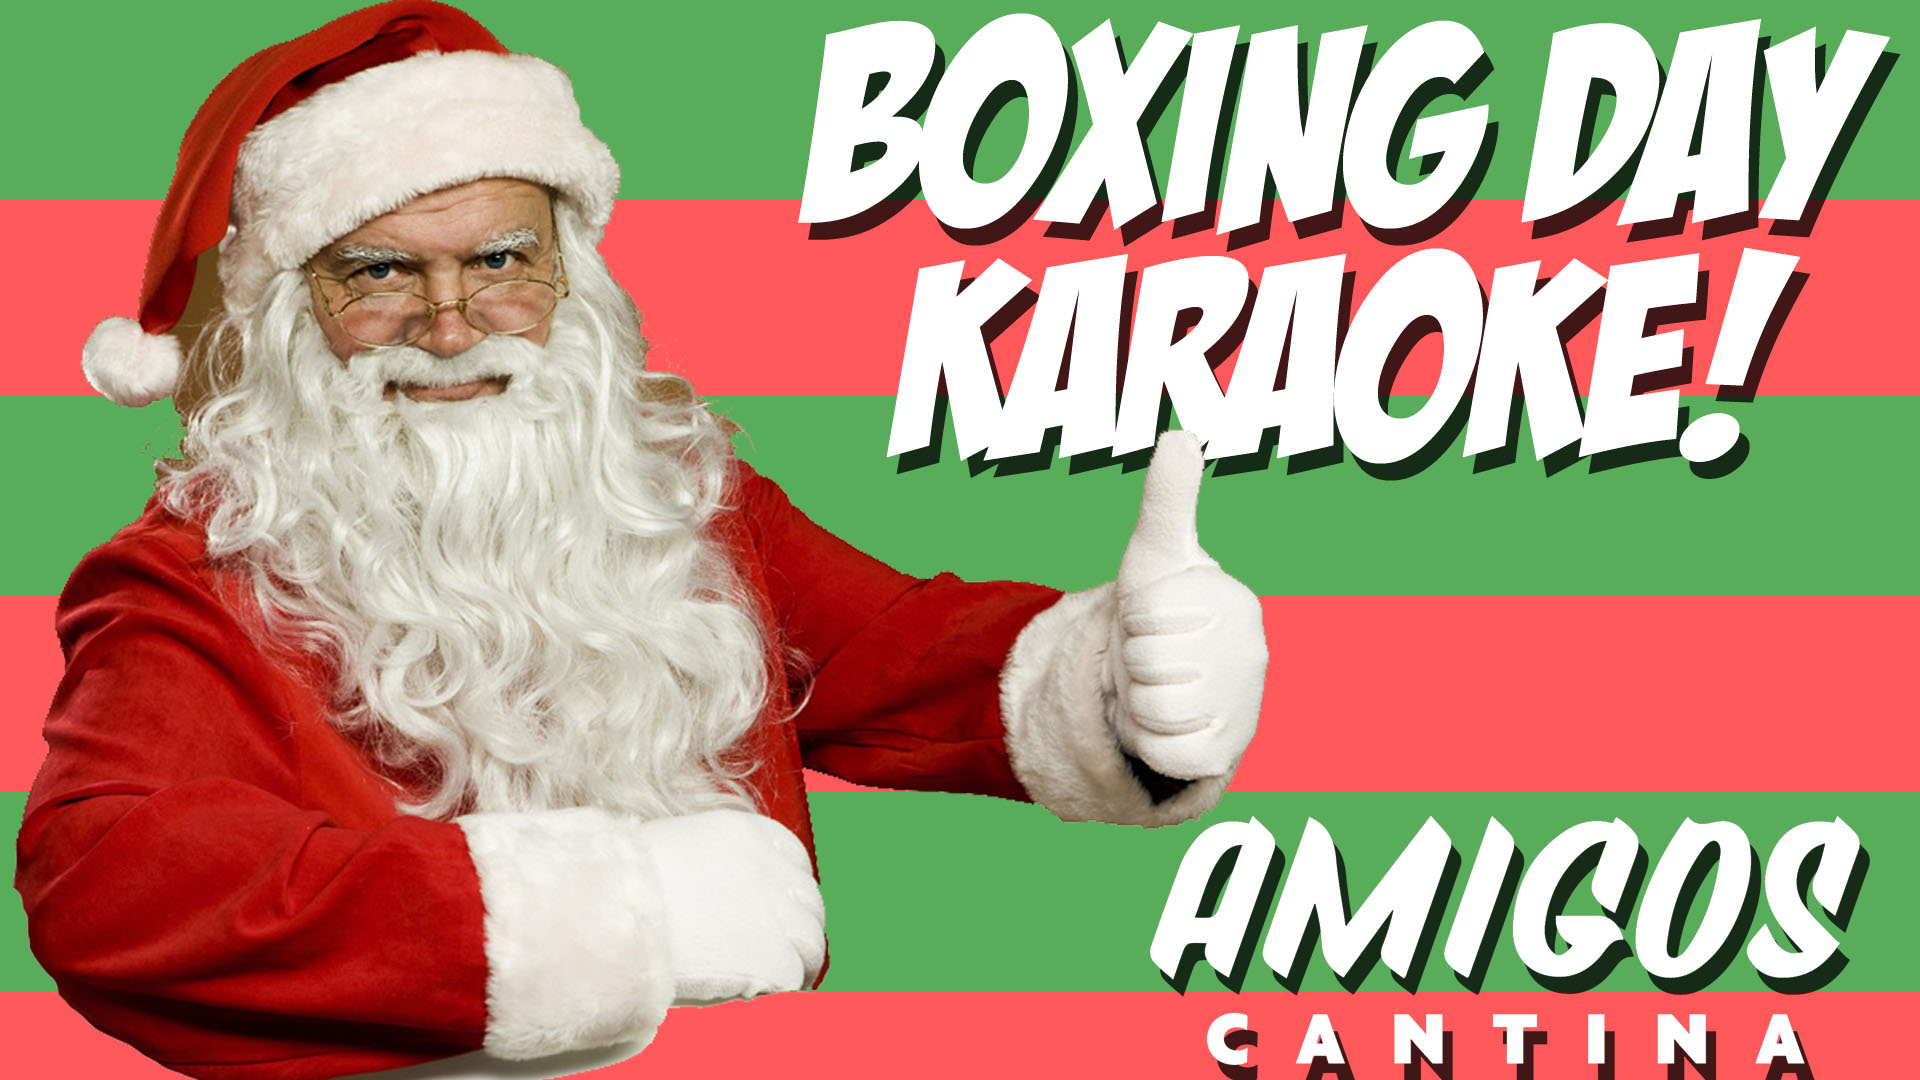 Amigos Karaoke – Boxing Day Edition!